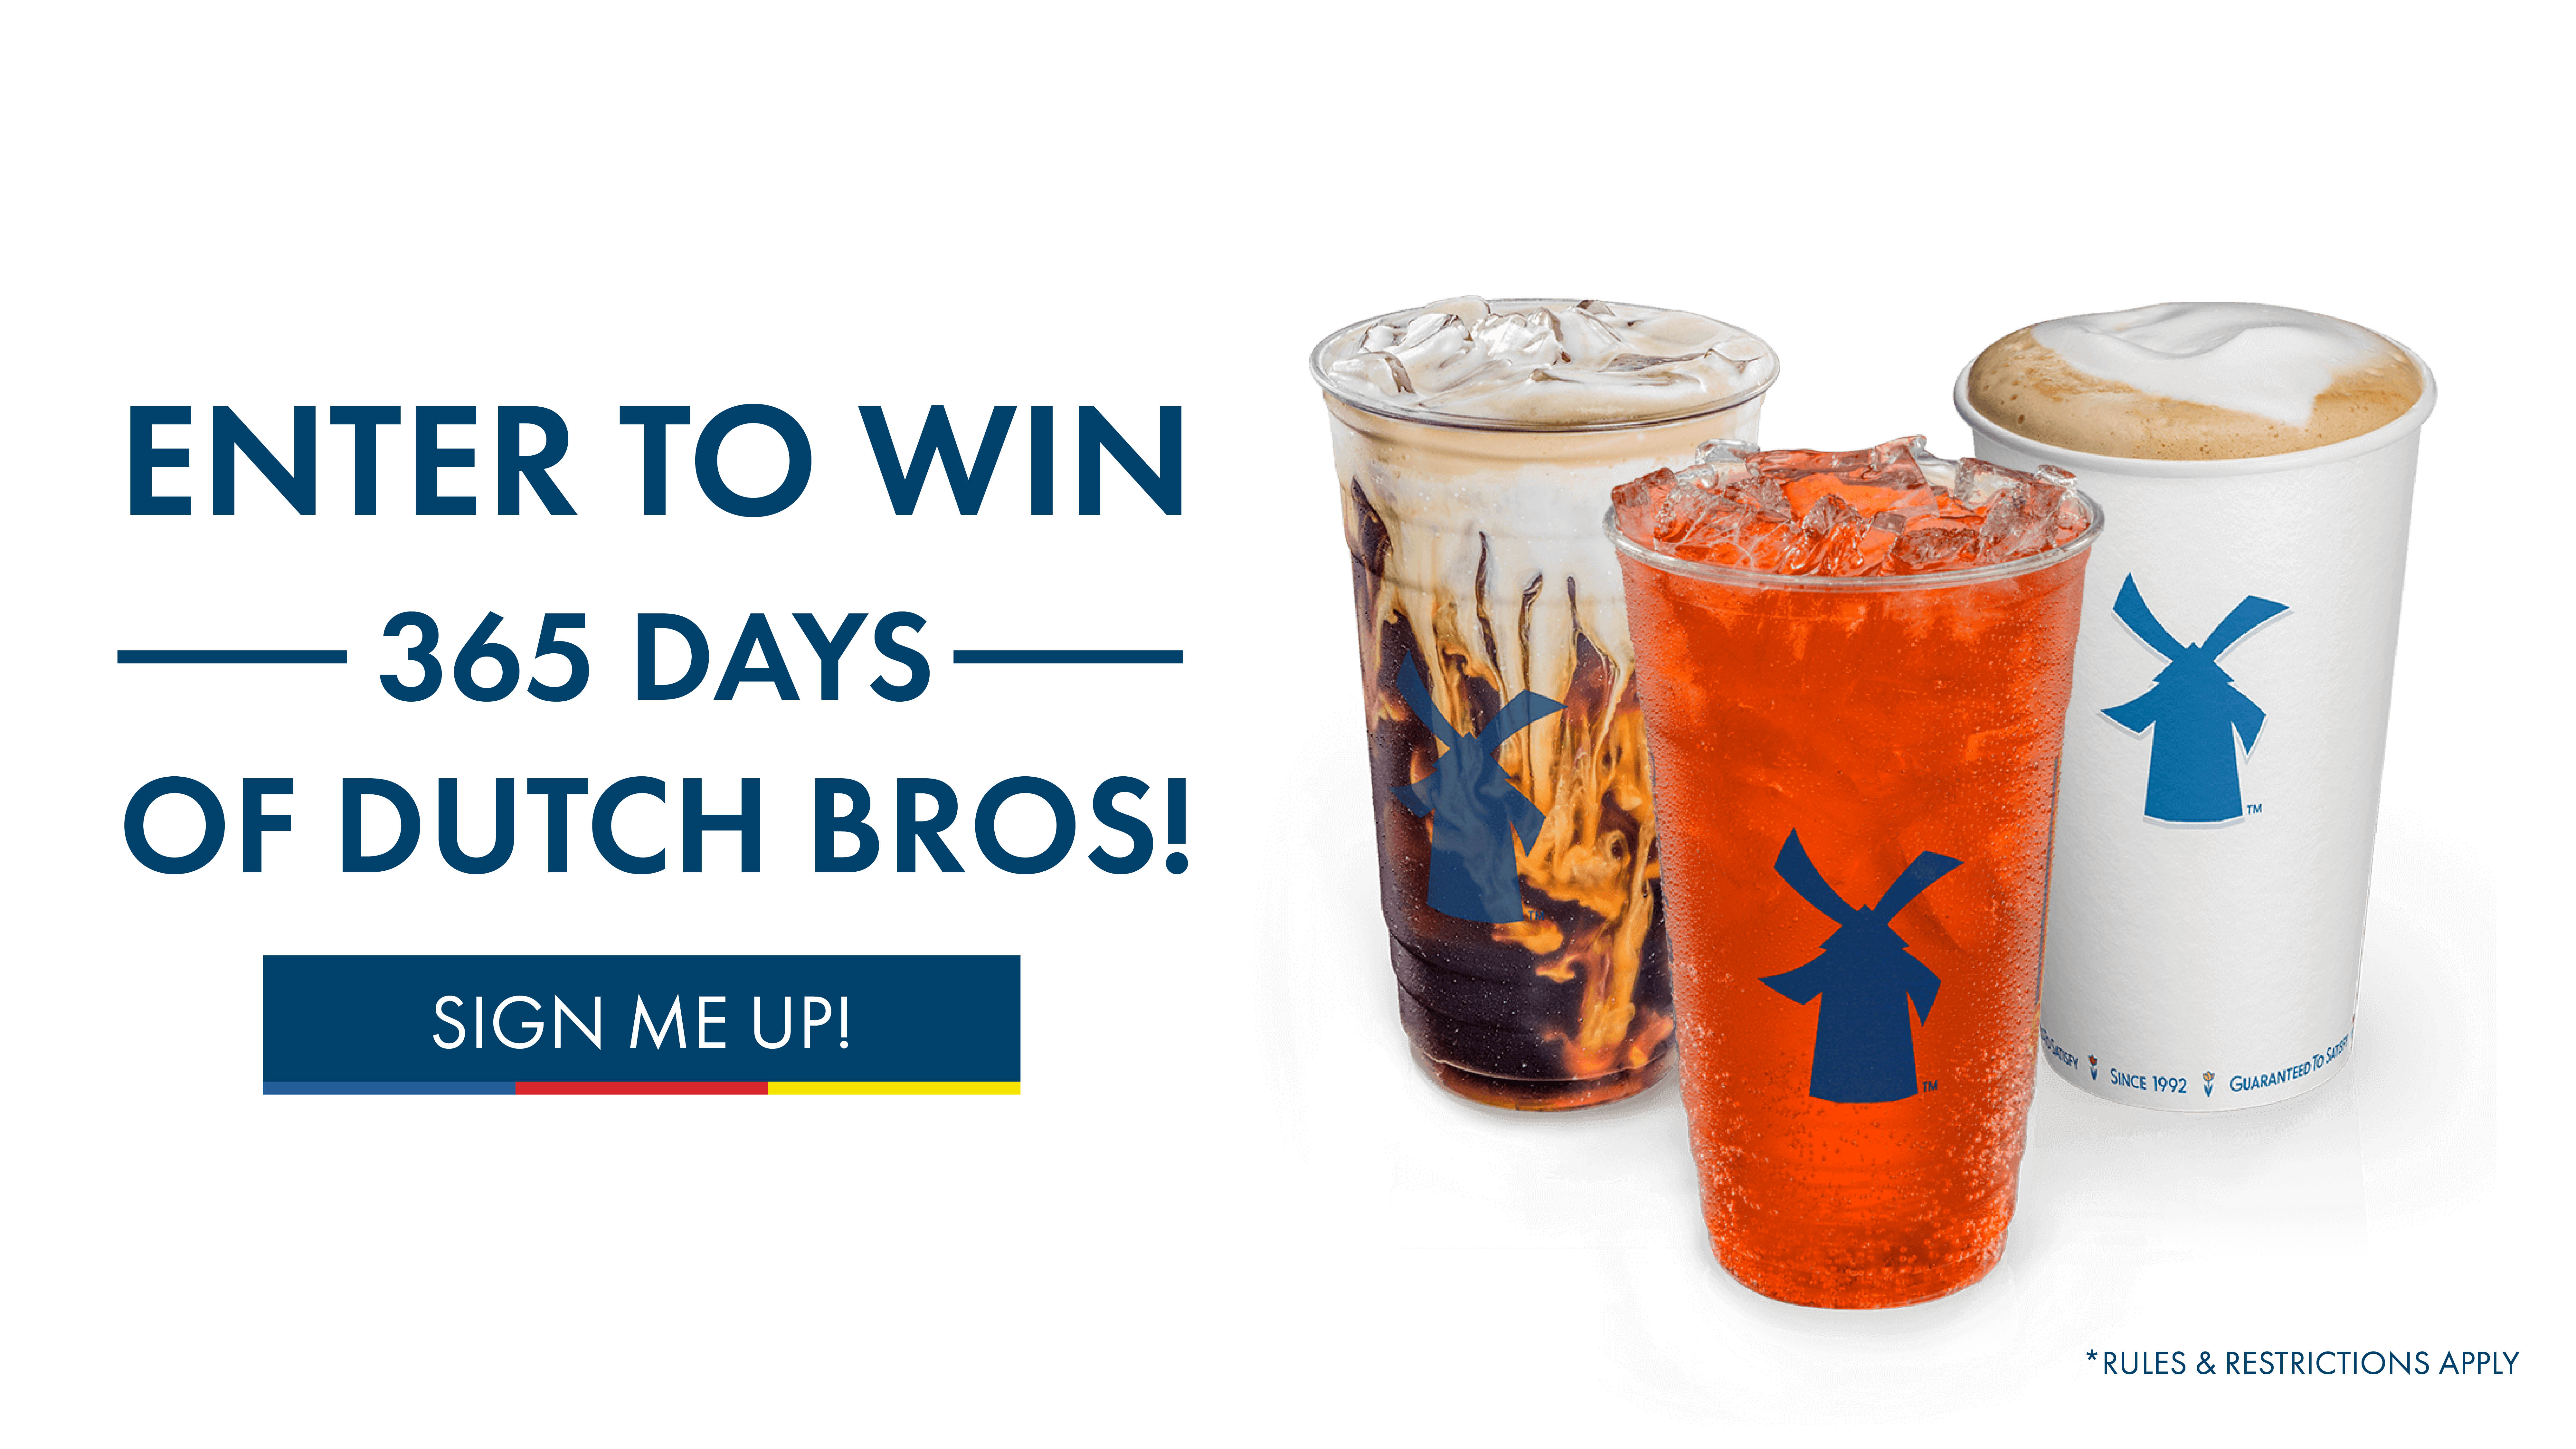 Enter to Win. 365 Days of Dutch Bros.